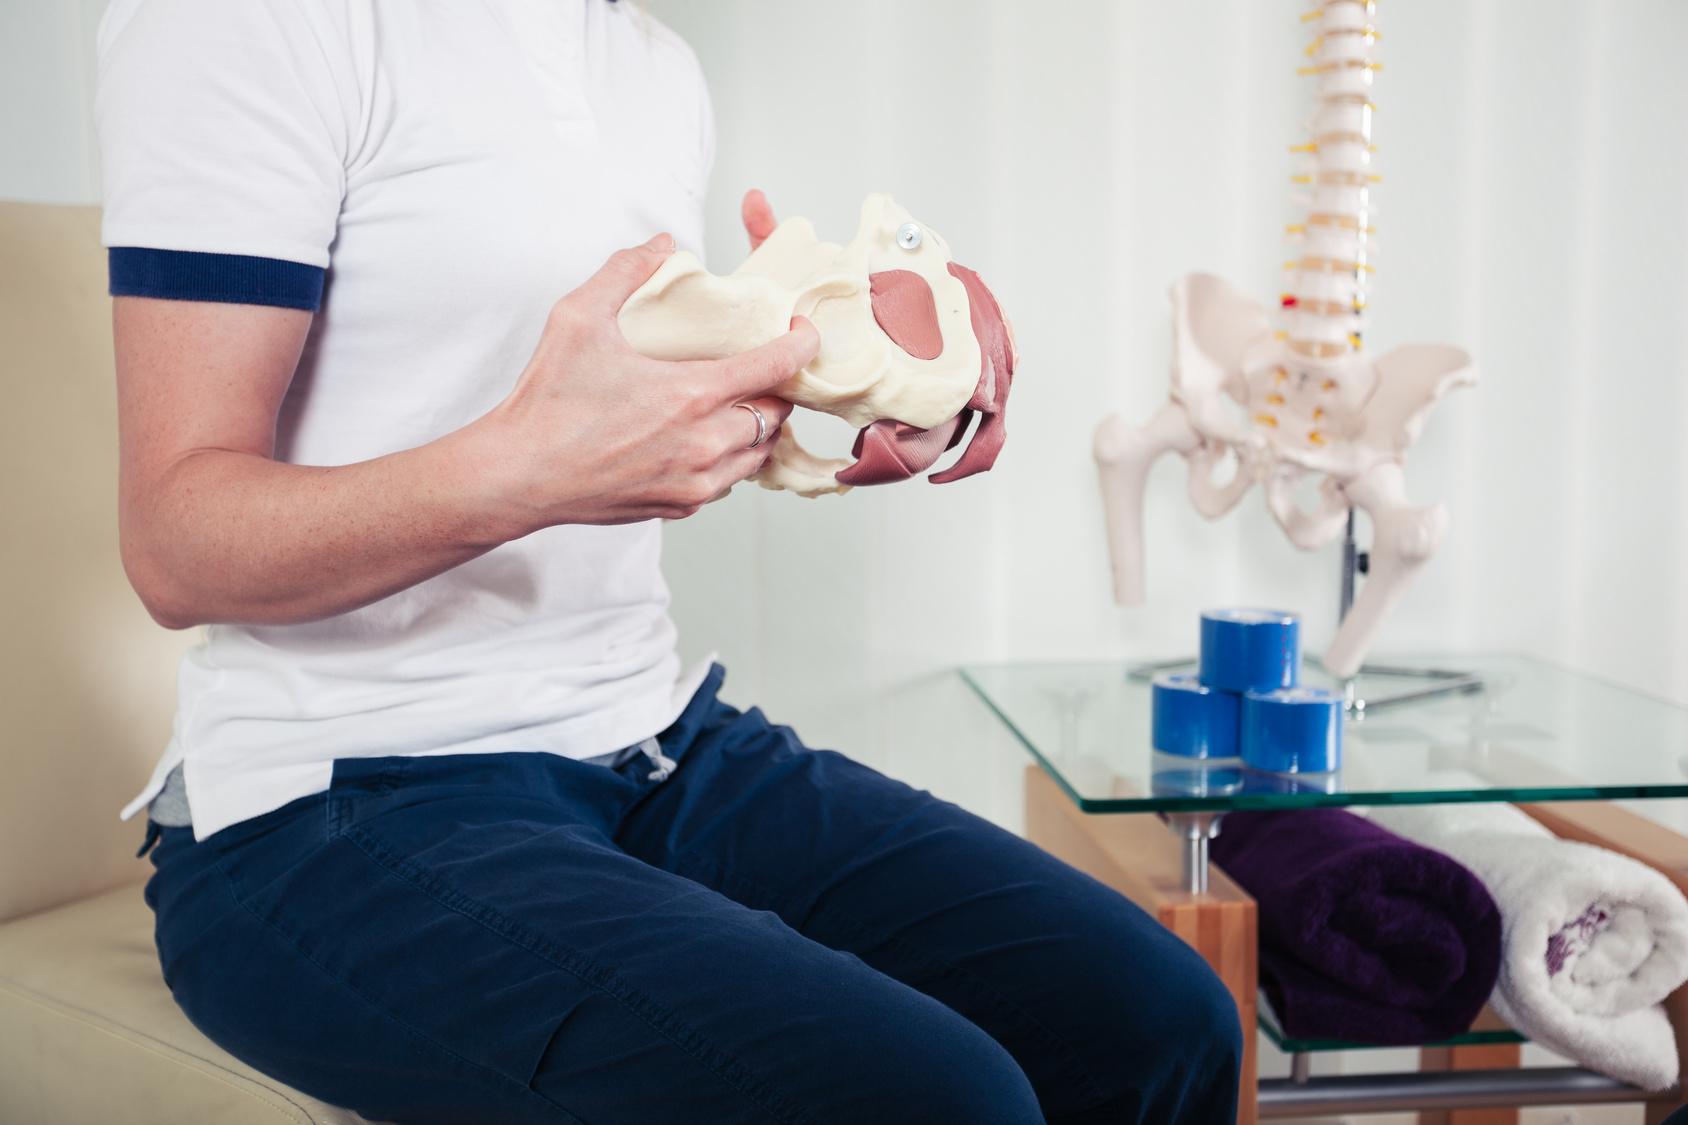 A physiotherapist is holding a model of a human pelvis